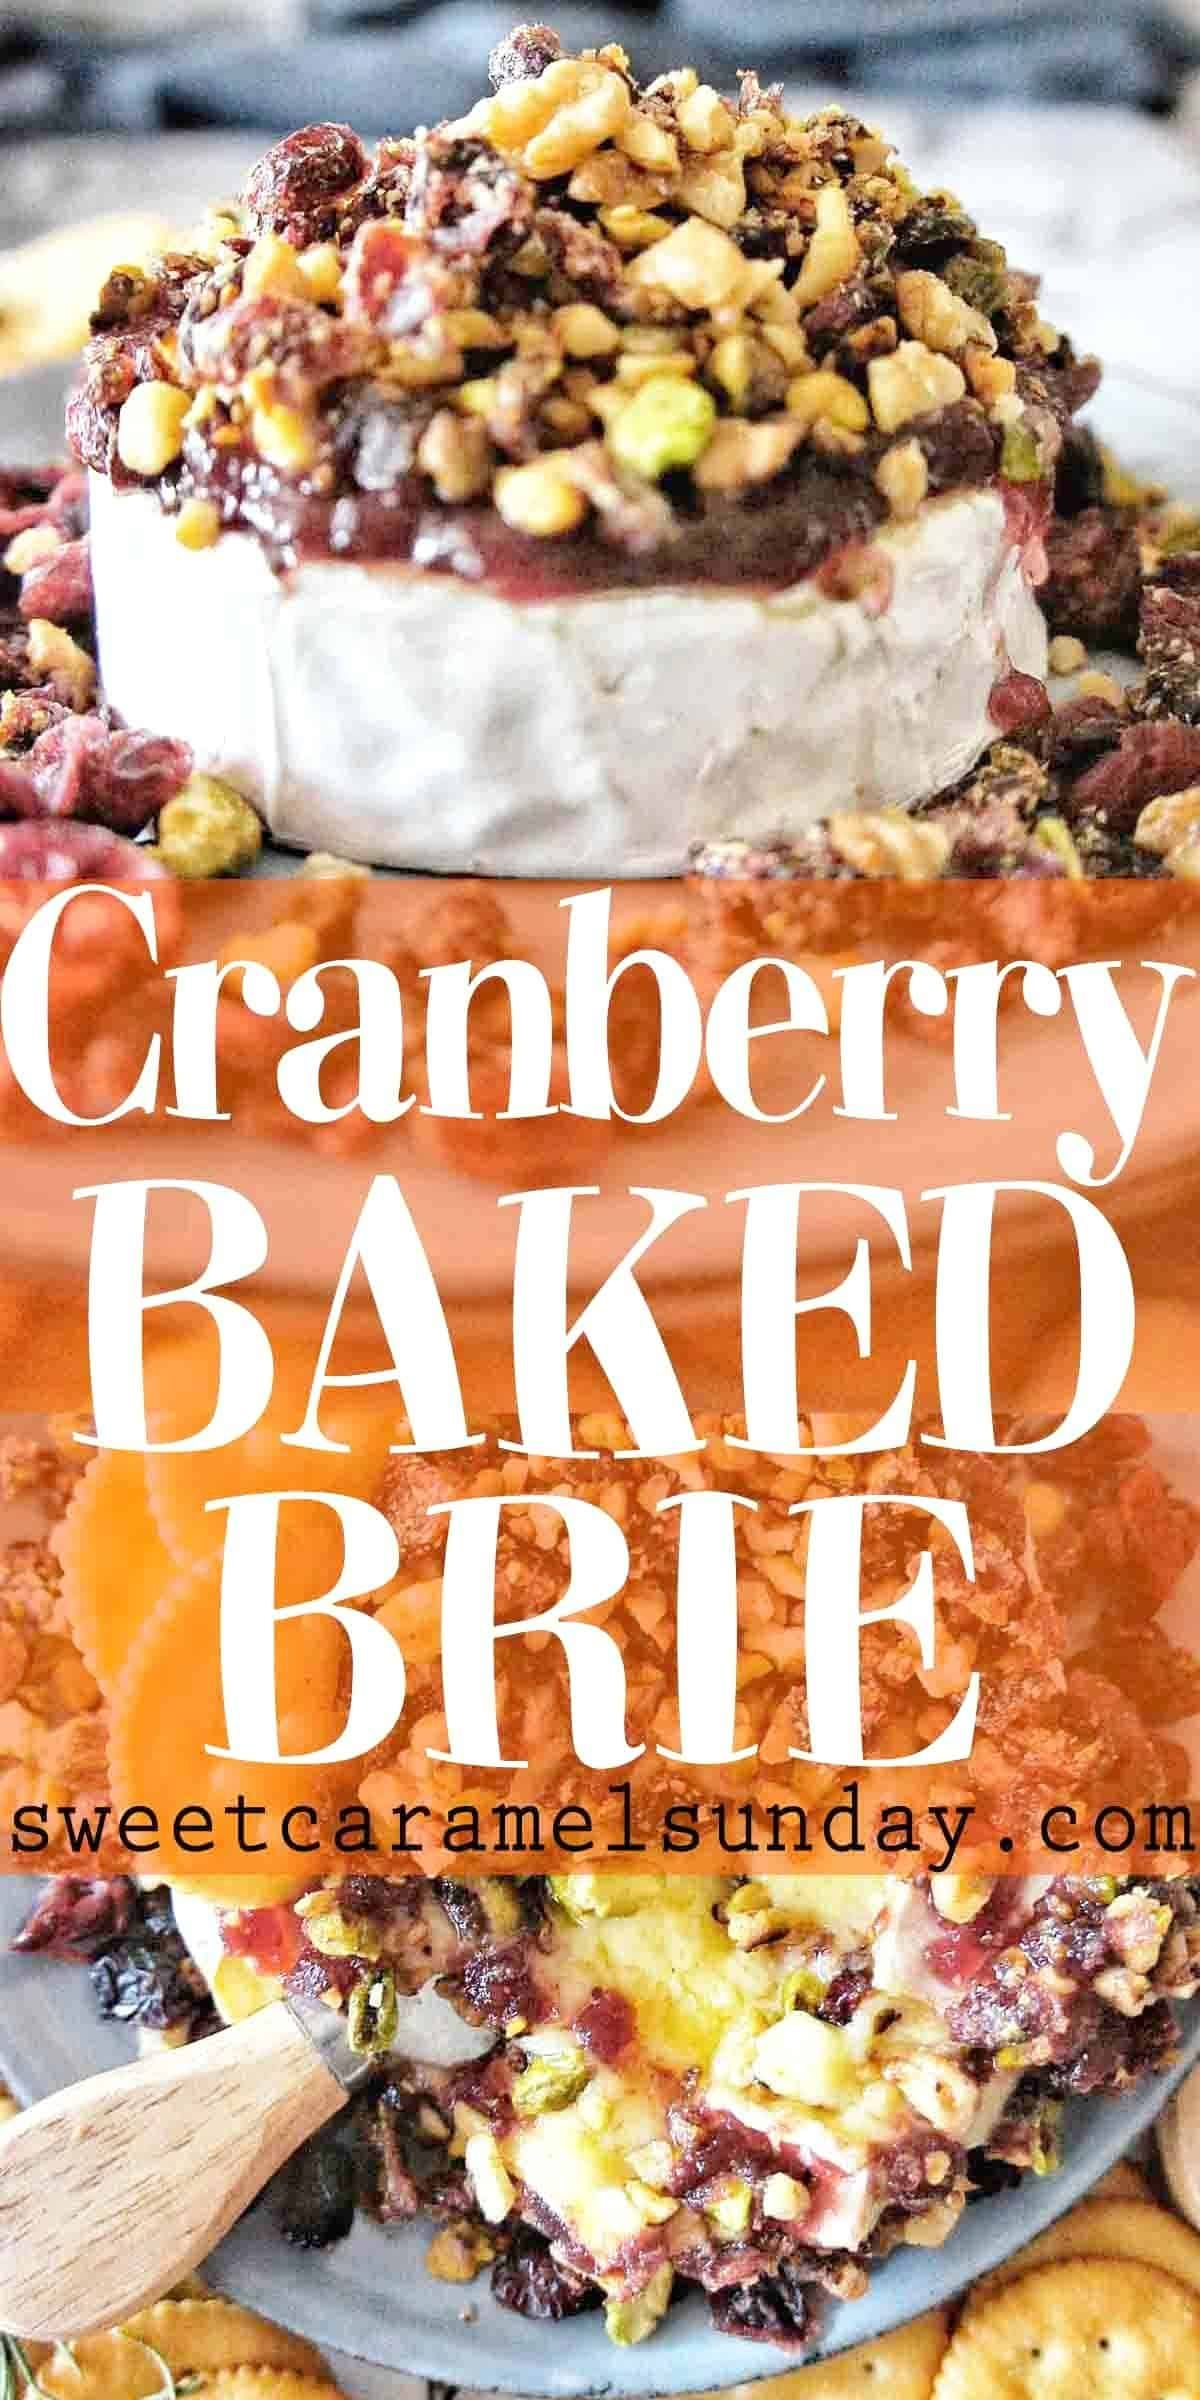 Cranberry Baked Brie is  an easy appetizer recipe that helps celebrate the festive season.